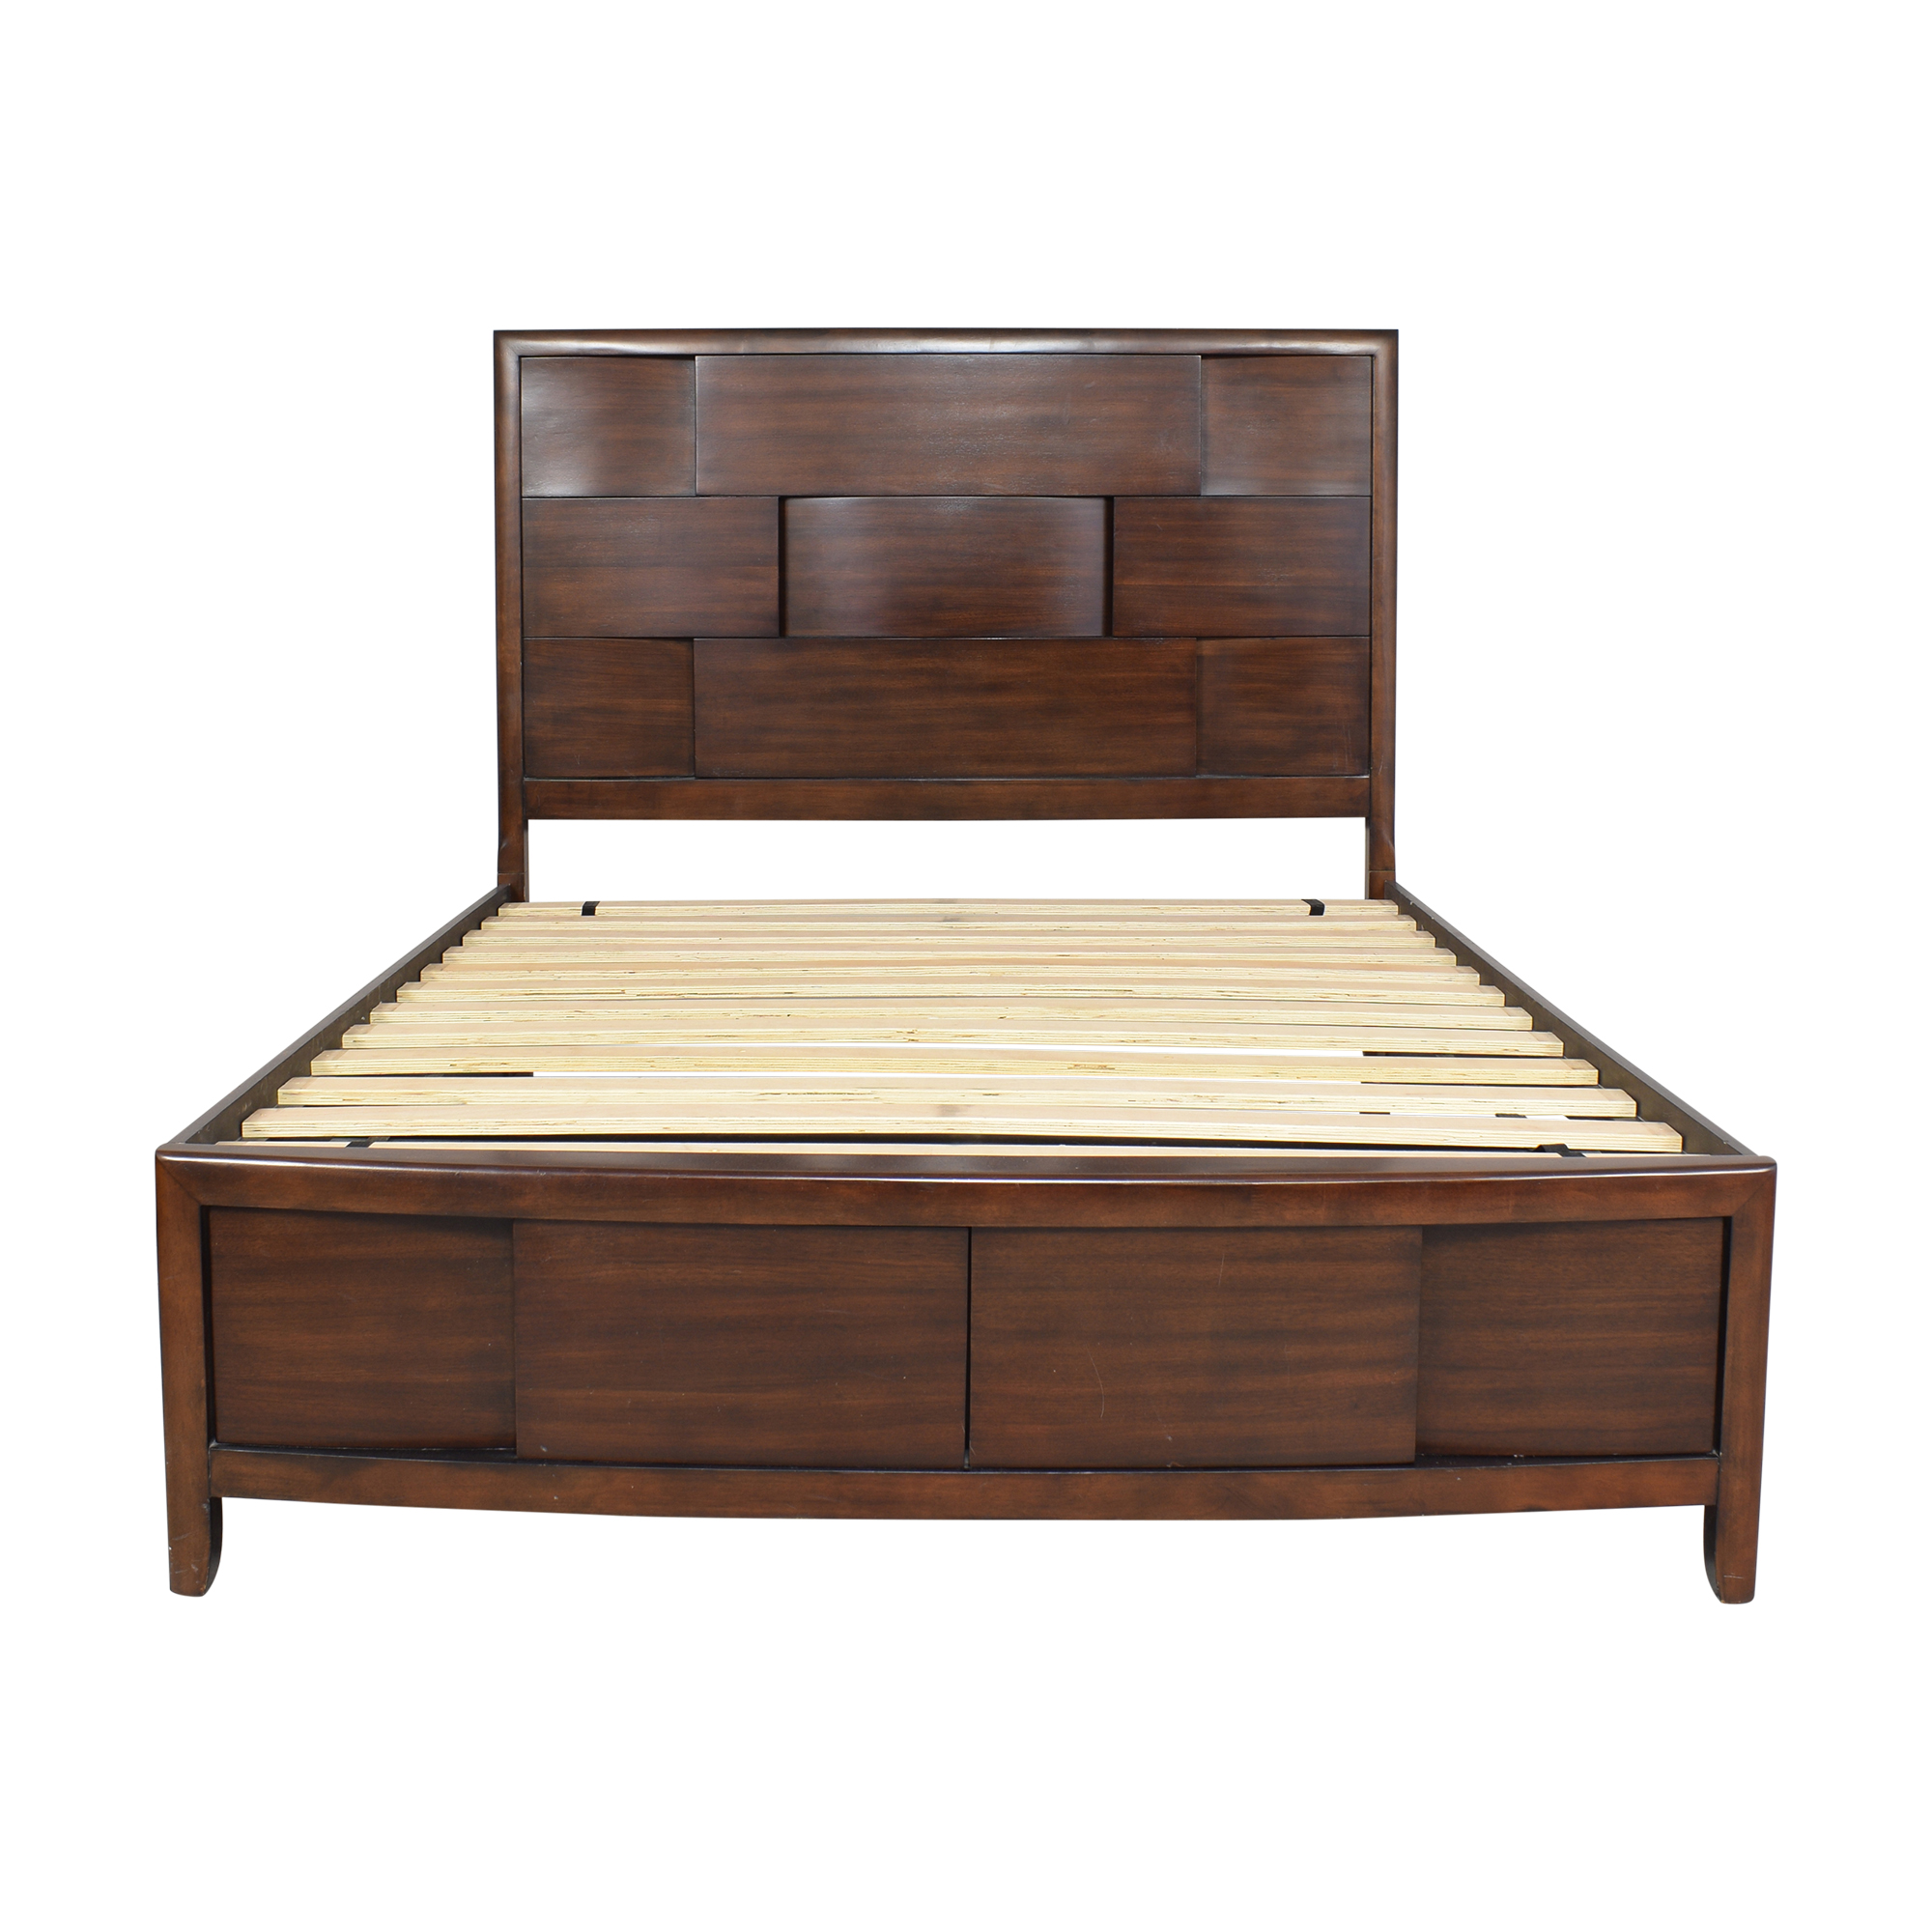 Raymour & Flanigan Raymour & Flanigan Queen Storage Bed Bed Frames